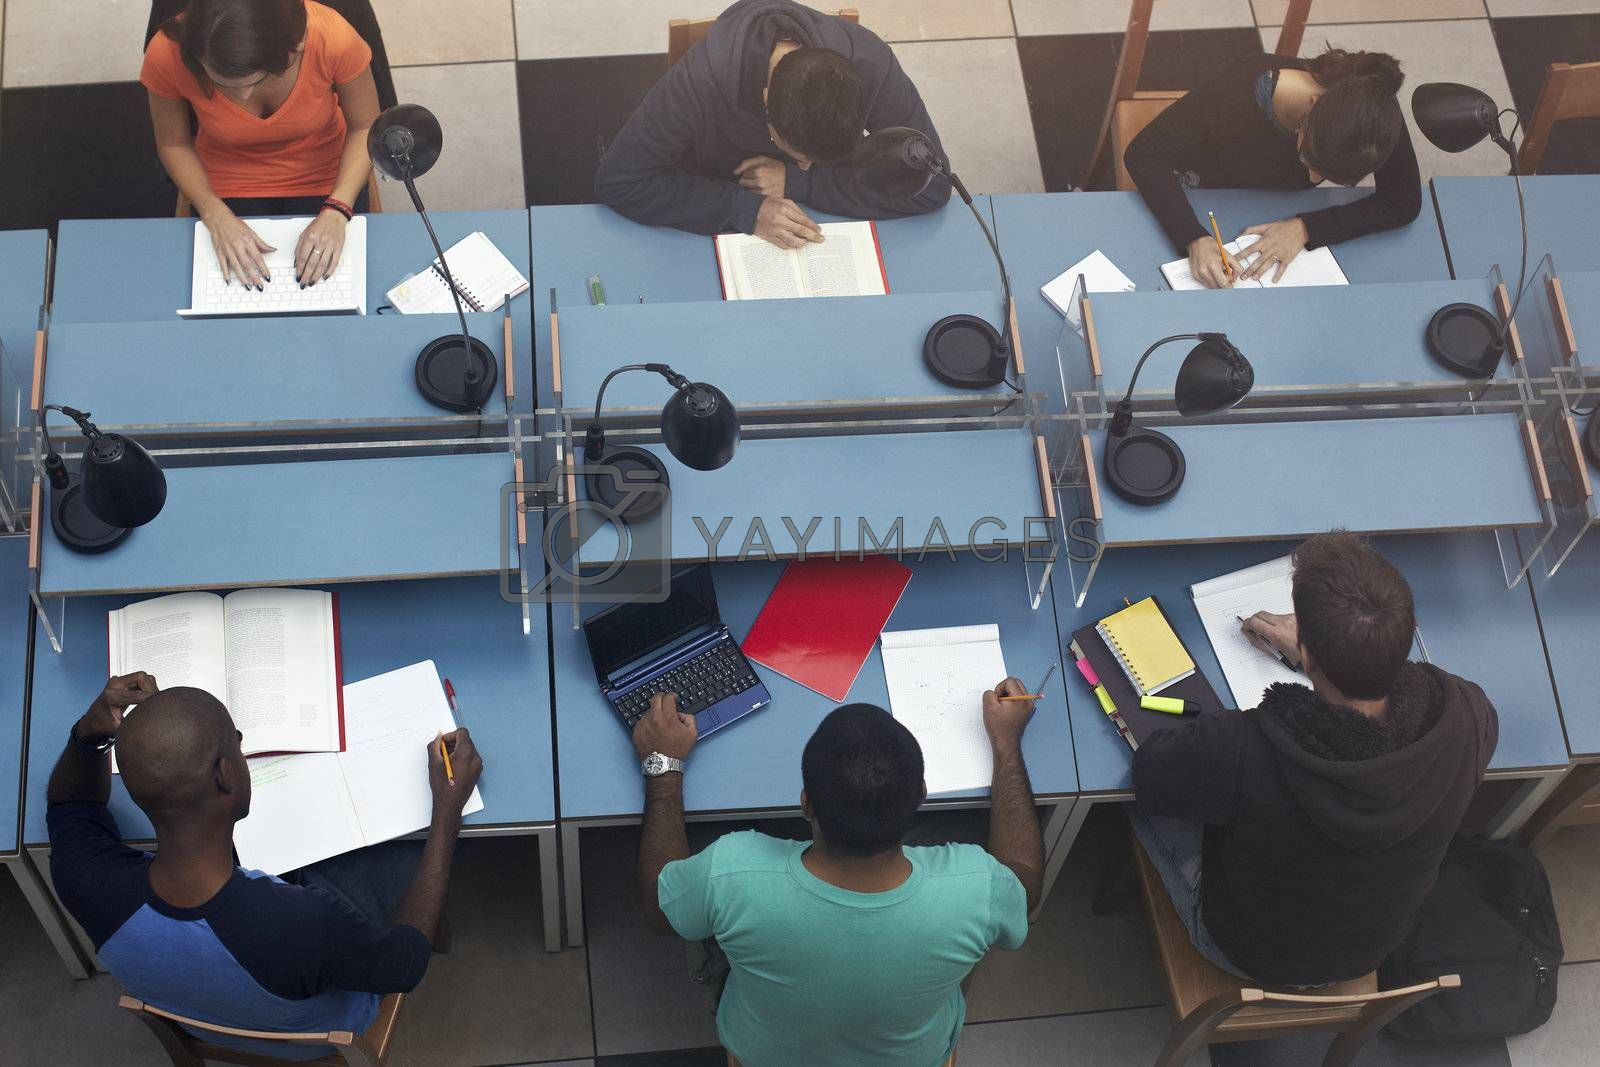 group of college students sitting on desks in library. Horizontal shape, high angle view